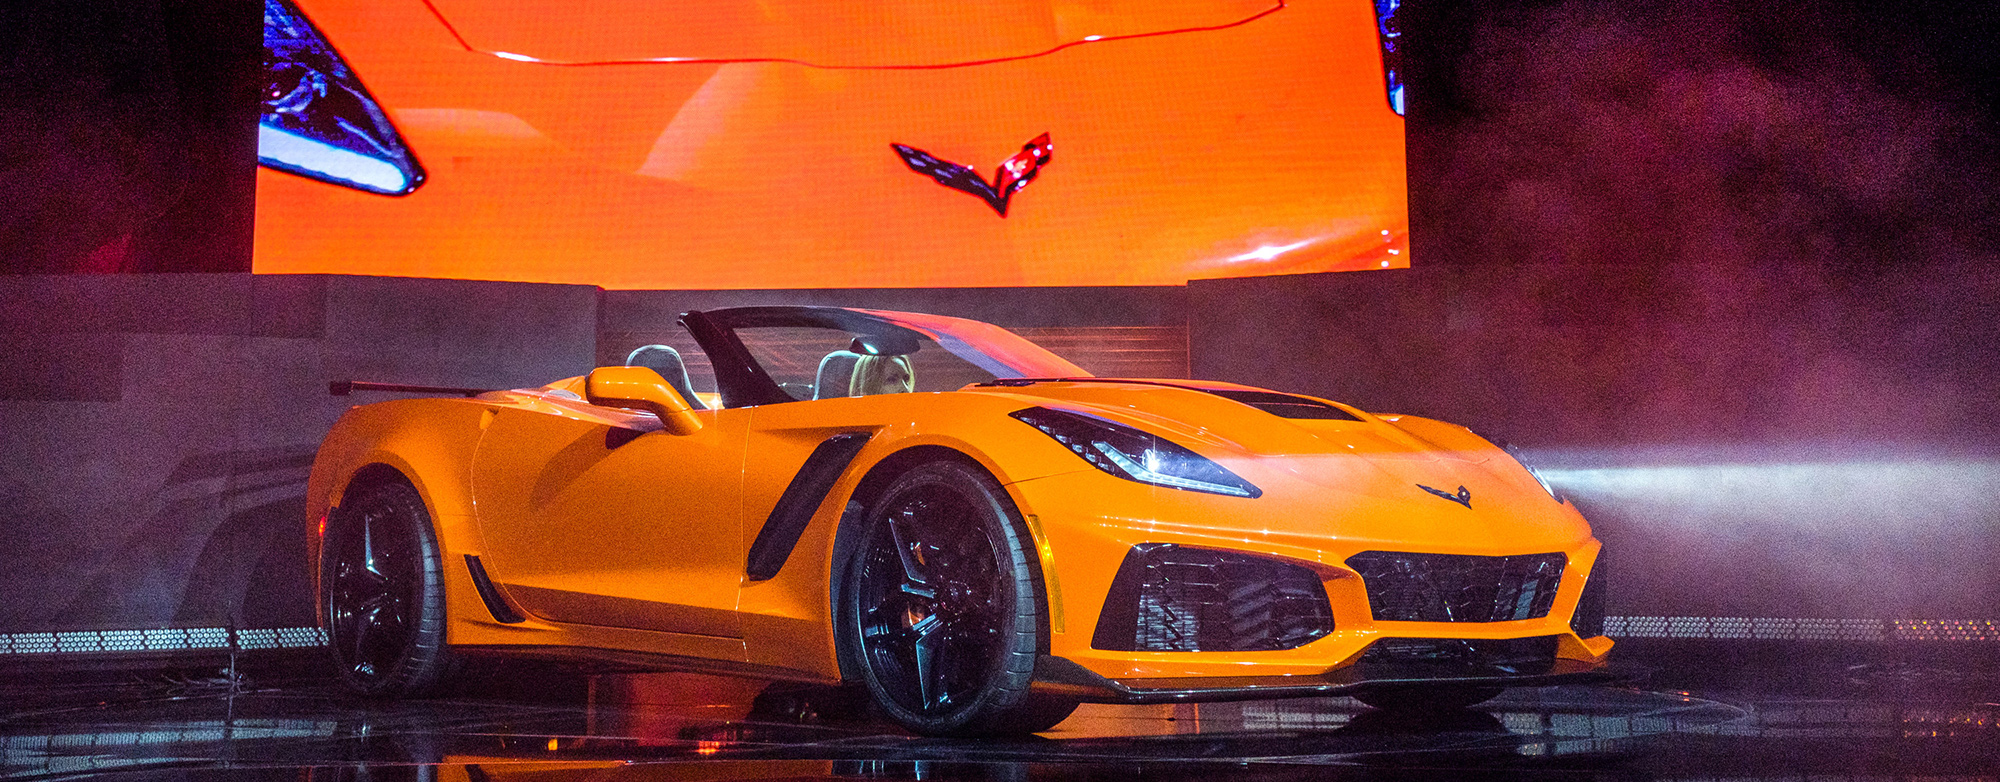 TrackWorthy - 2019 Chevrolet Corvette ZR1 Convertible (4-2)